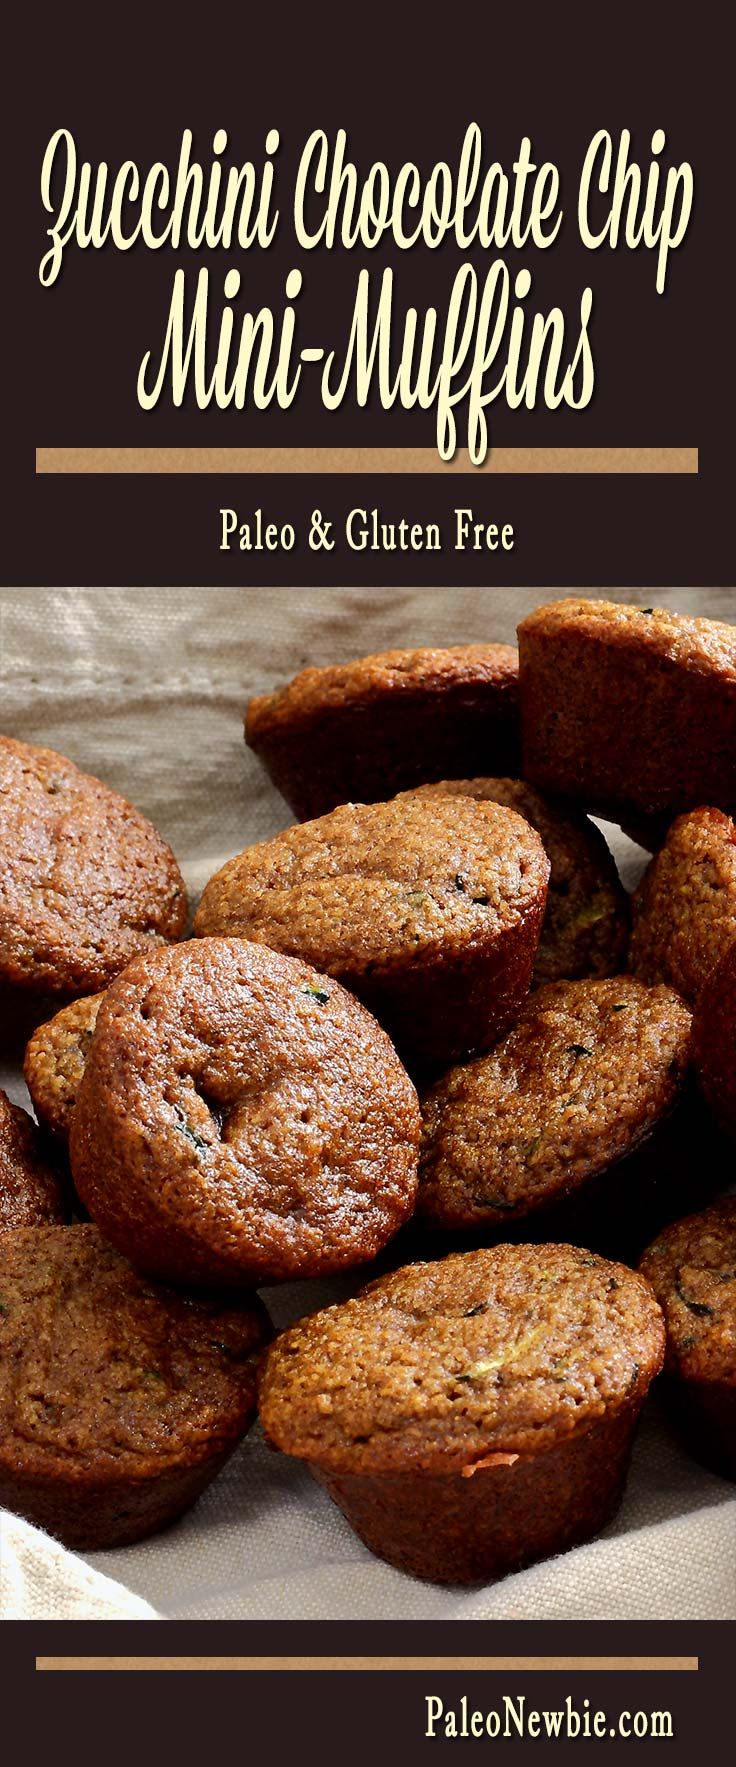 Healthy little muffins with a BIG taste! Slightly sweet with extra cinnamon and a sprinkling of dark chocolate chips inside. A great kids' snack – they'll never taste the zucchini!